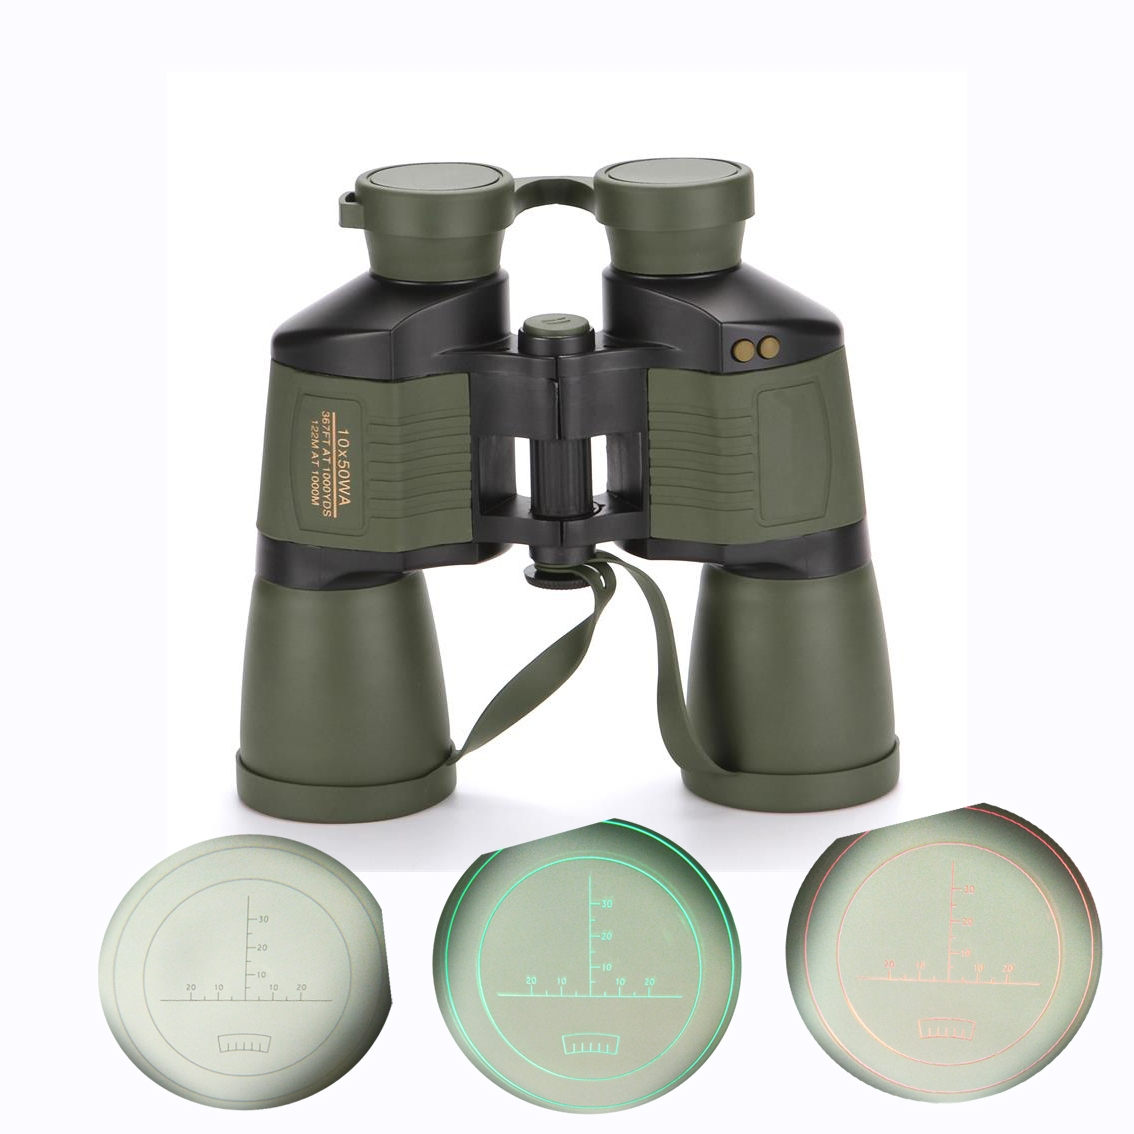 HD Brand 10X50 Auto focus waterproof rangefinder binoculars telescope hunting tourism optical outdoor sports eyepiece binoculars free shipping portable binoculars telescope hunting telescope tourism optical 30x60 zoom outdoor sports eyepiece 126m 1000m